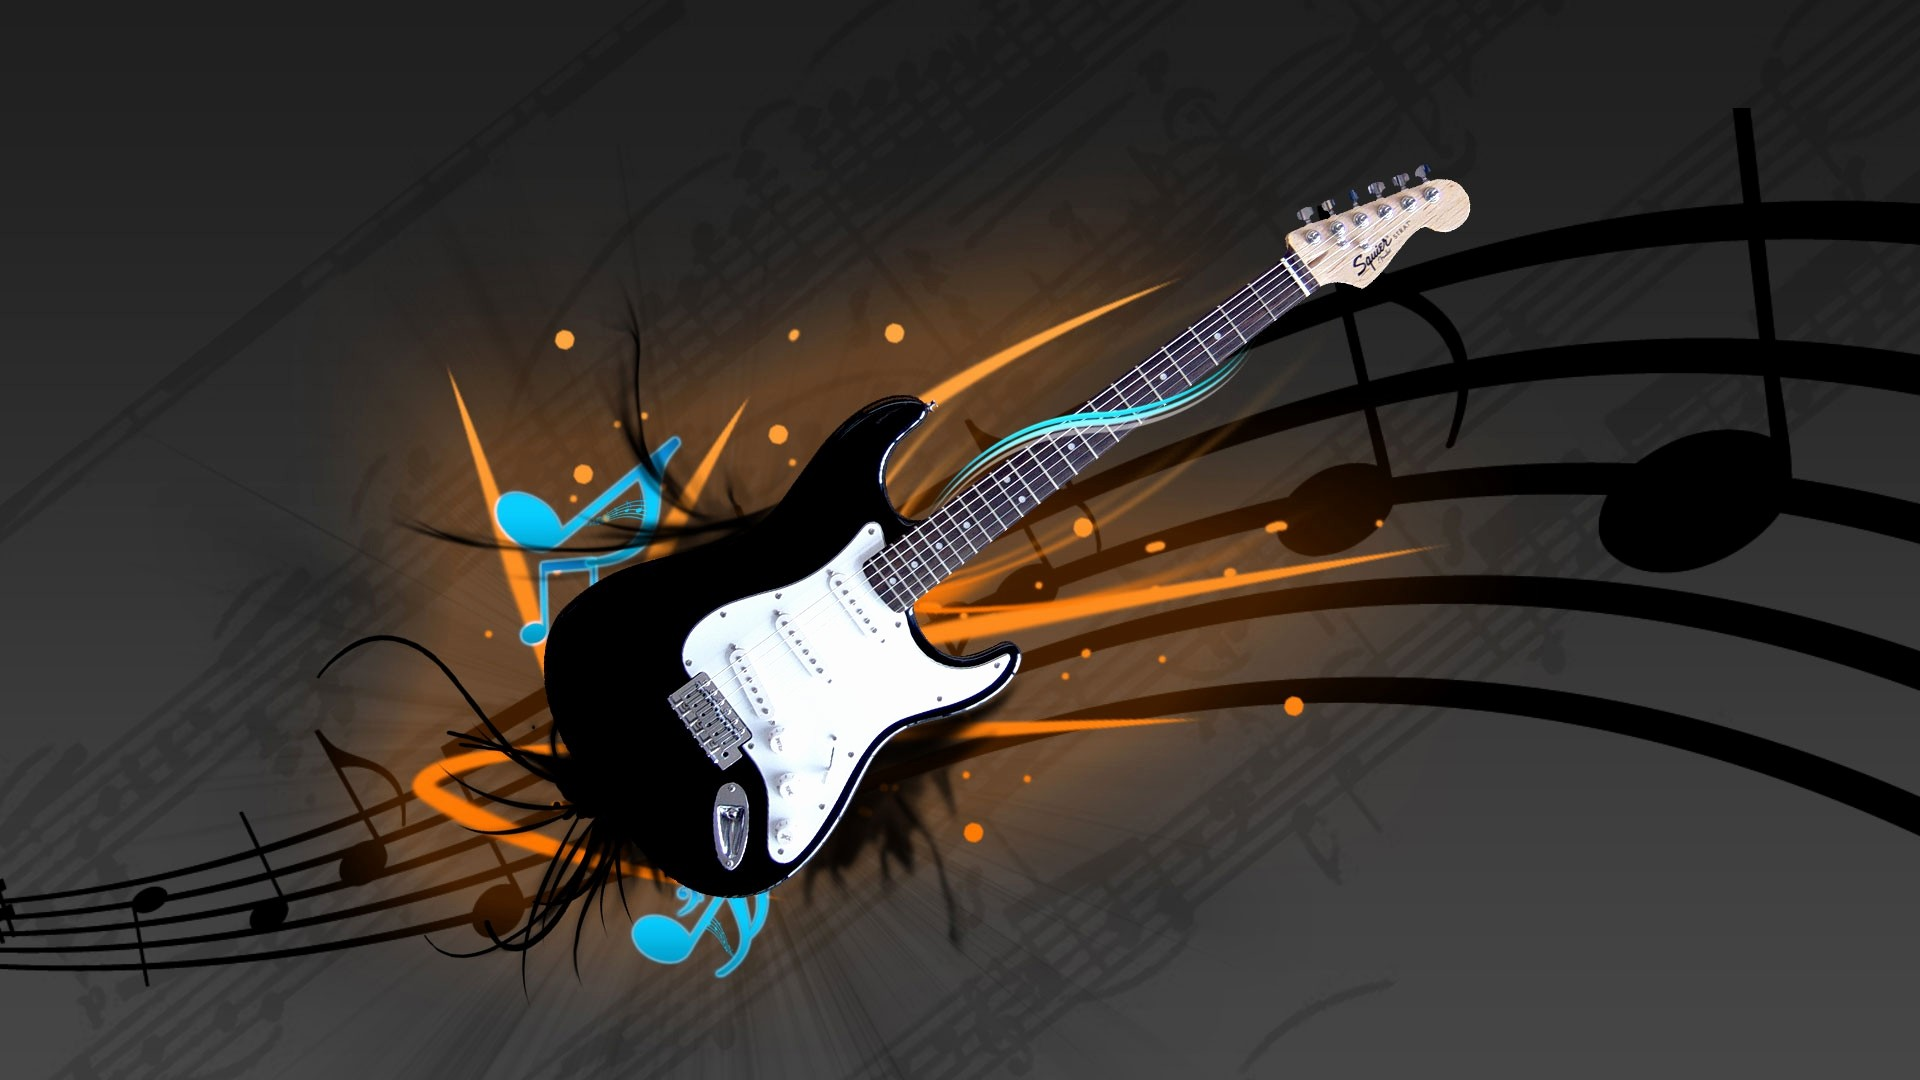 1920x1080 Yamaha Guitar Taiwan Hd Picture Wallpaper Free Download Awesome 49 Guitar  Images and Wallpapers for Mac